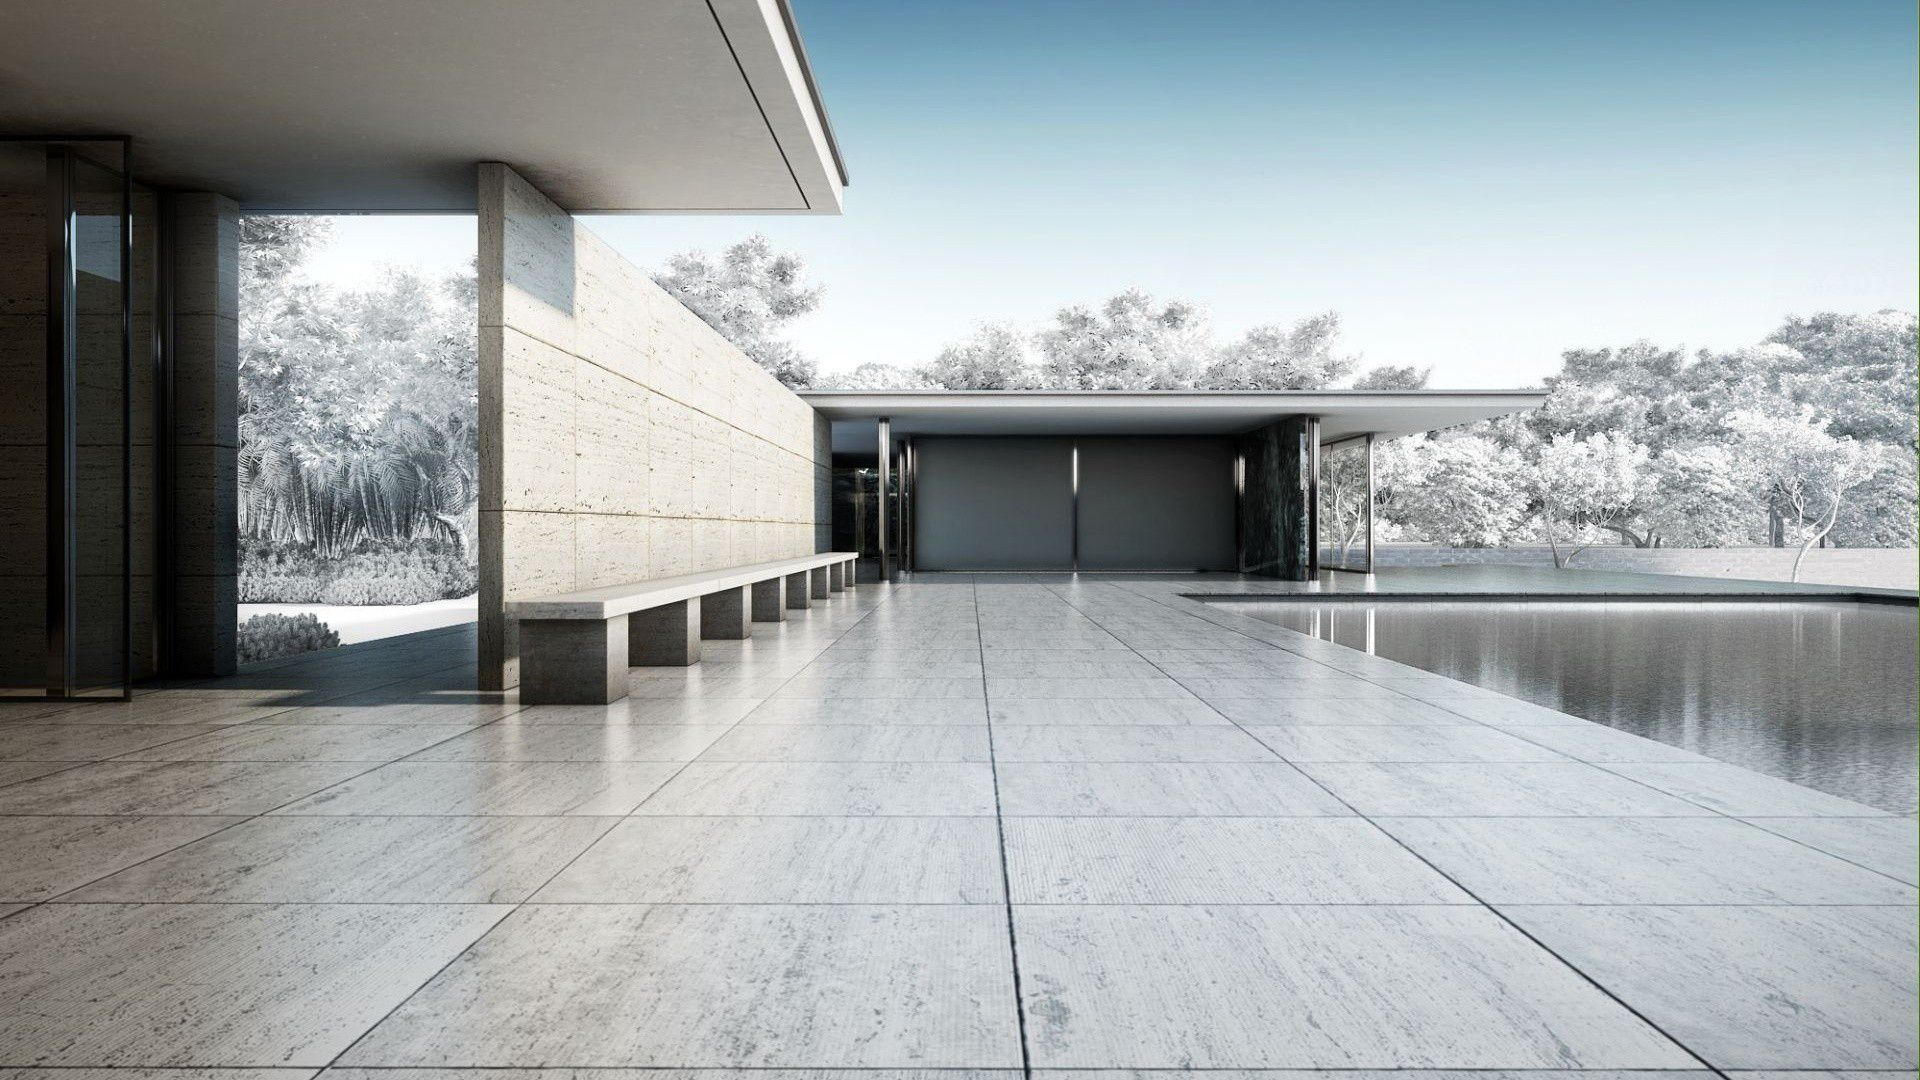 Villa tugendhat arkitalker mies van der rohe - Mies Van Der Rohe Barcelona Pavilion Mid Century Moderne Inspired House Style Pinterest Pavilion Ludwig Mies Van Der Rohe And Architecture